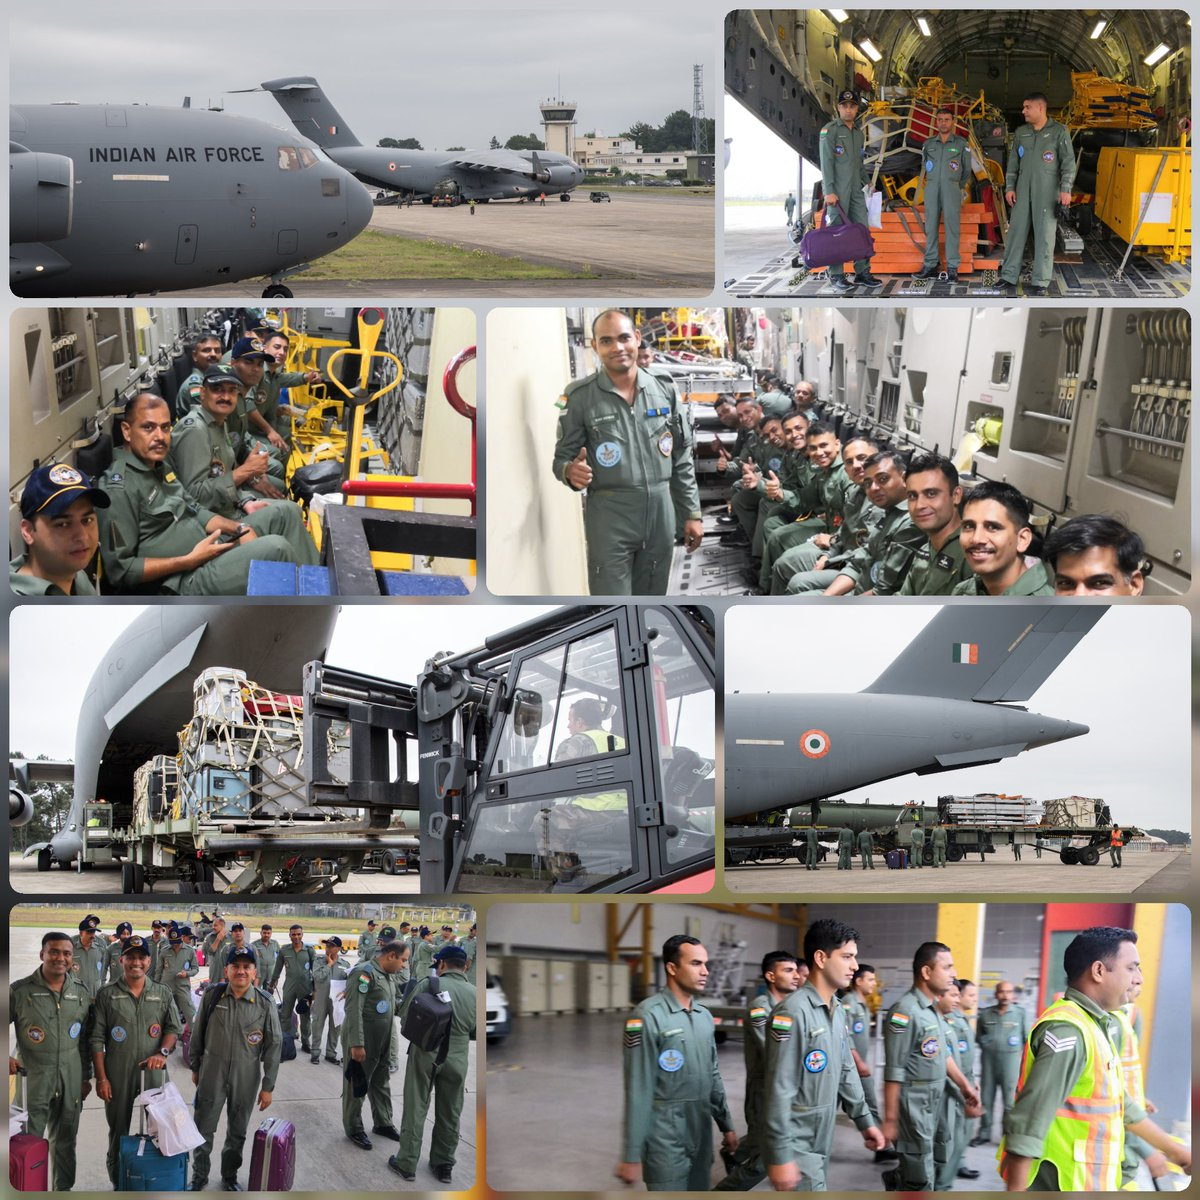 #ExGaruda2019 : The Flying Operations for exercise GARUDA have ended, the IAF team is prepared for de-induction. The big boys are here to take us Home.